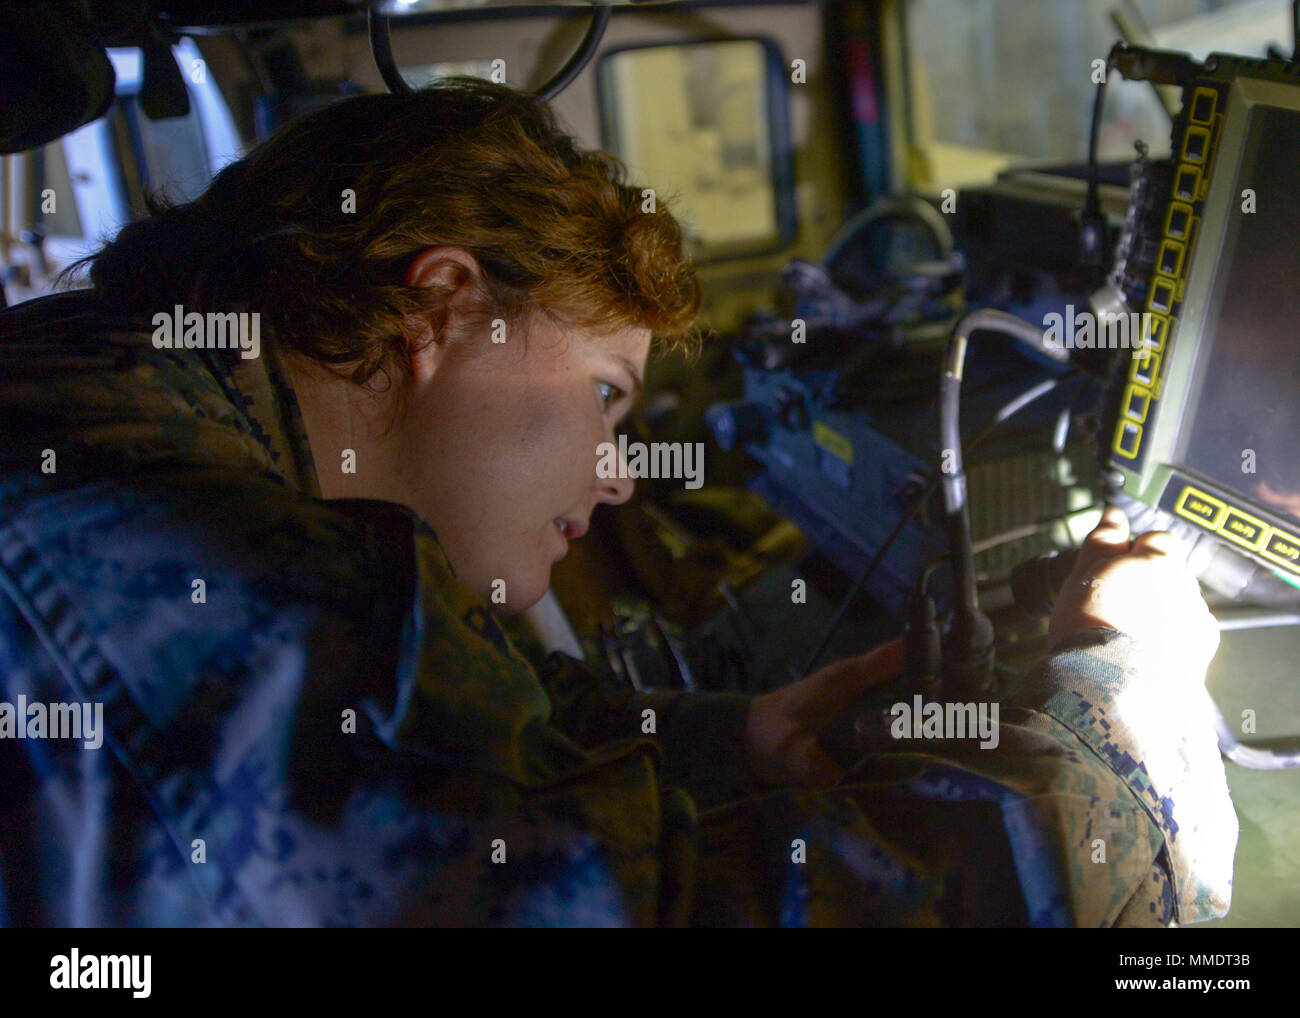 171022-N-NB142-388  PACIFIC OCEAN (Oct. 22, 2017) Marine Sgt. Emily Estelita Larue, assigned to 1st Law Enforcement Battalion, 1st Marine expeditionary Brigade (MEB), installs a Blue Force Tracker in a High Mobility Multipurpose Wheeled Vehicle (HMMWV) aboard the Wasp-class amphibious assault ship USS Essex (LHD 2) during Dawn Blitz 2017.  Dawn Blitz is a scenario-driven exercise designed to train and integrate Navy and Marine Corps units by providing a robust training environment where forces plan and execute an amphibious assault, engage in live-fire events, and establish expeditionary advan - Stock Image